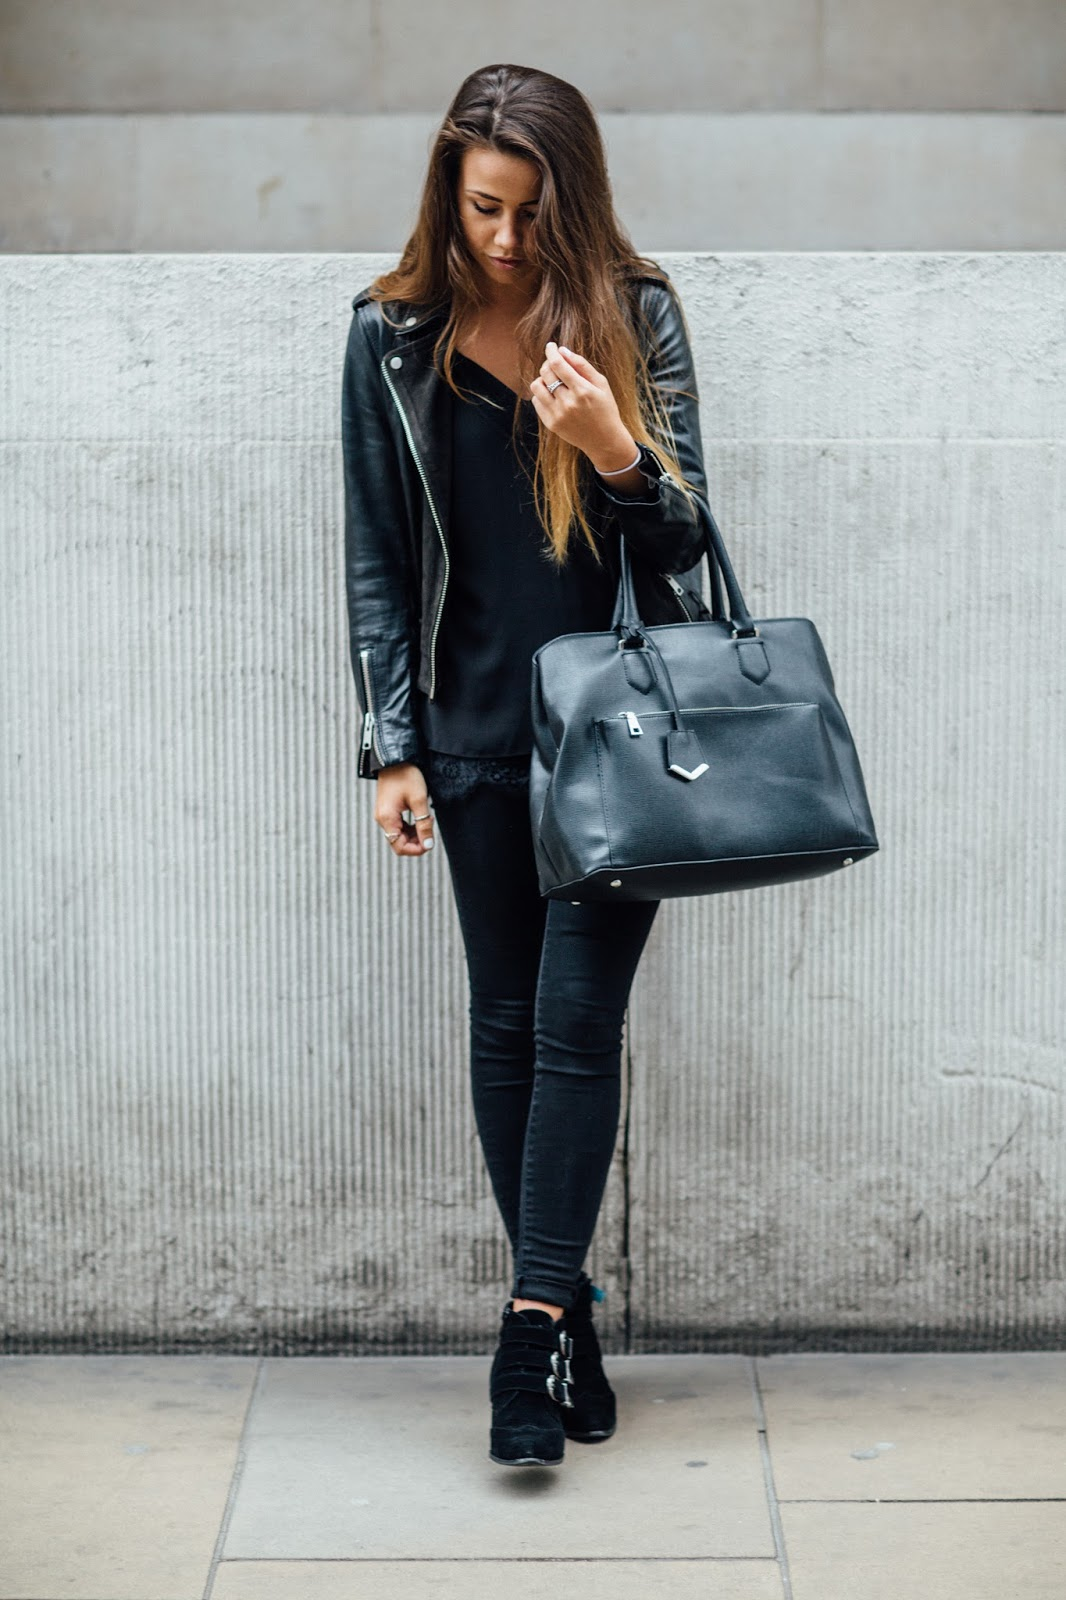 black outfit thats stylish